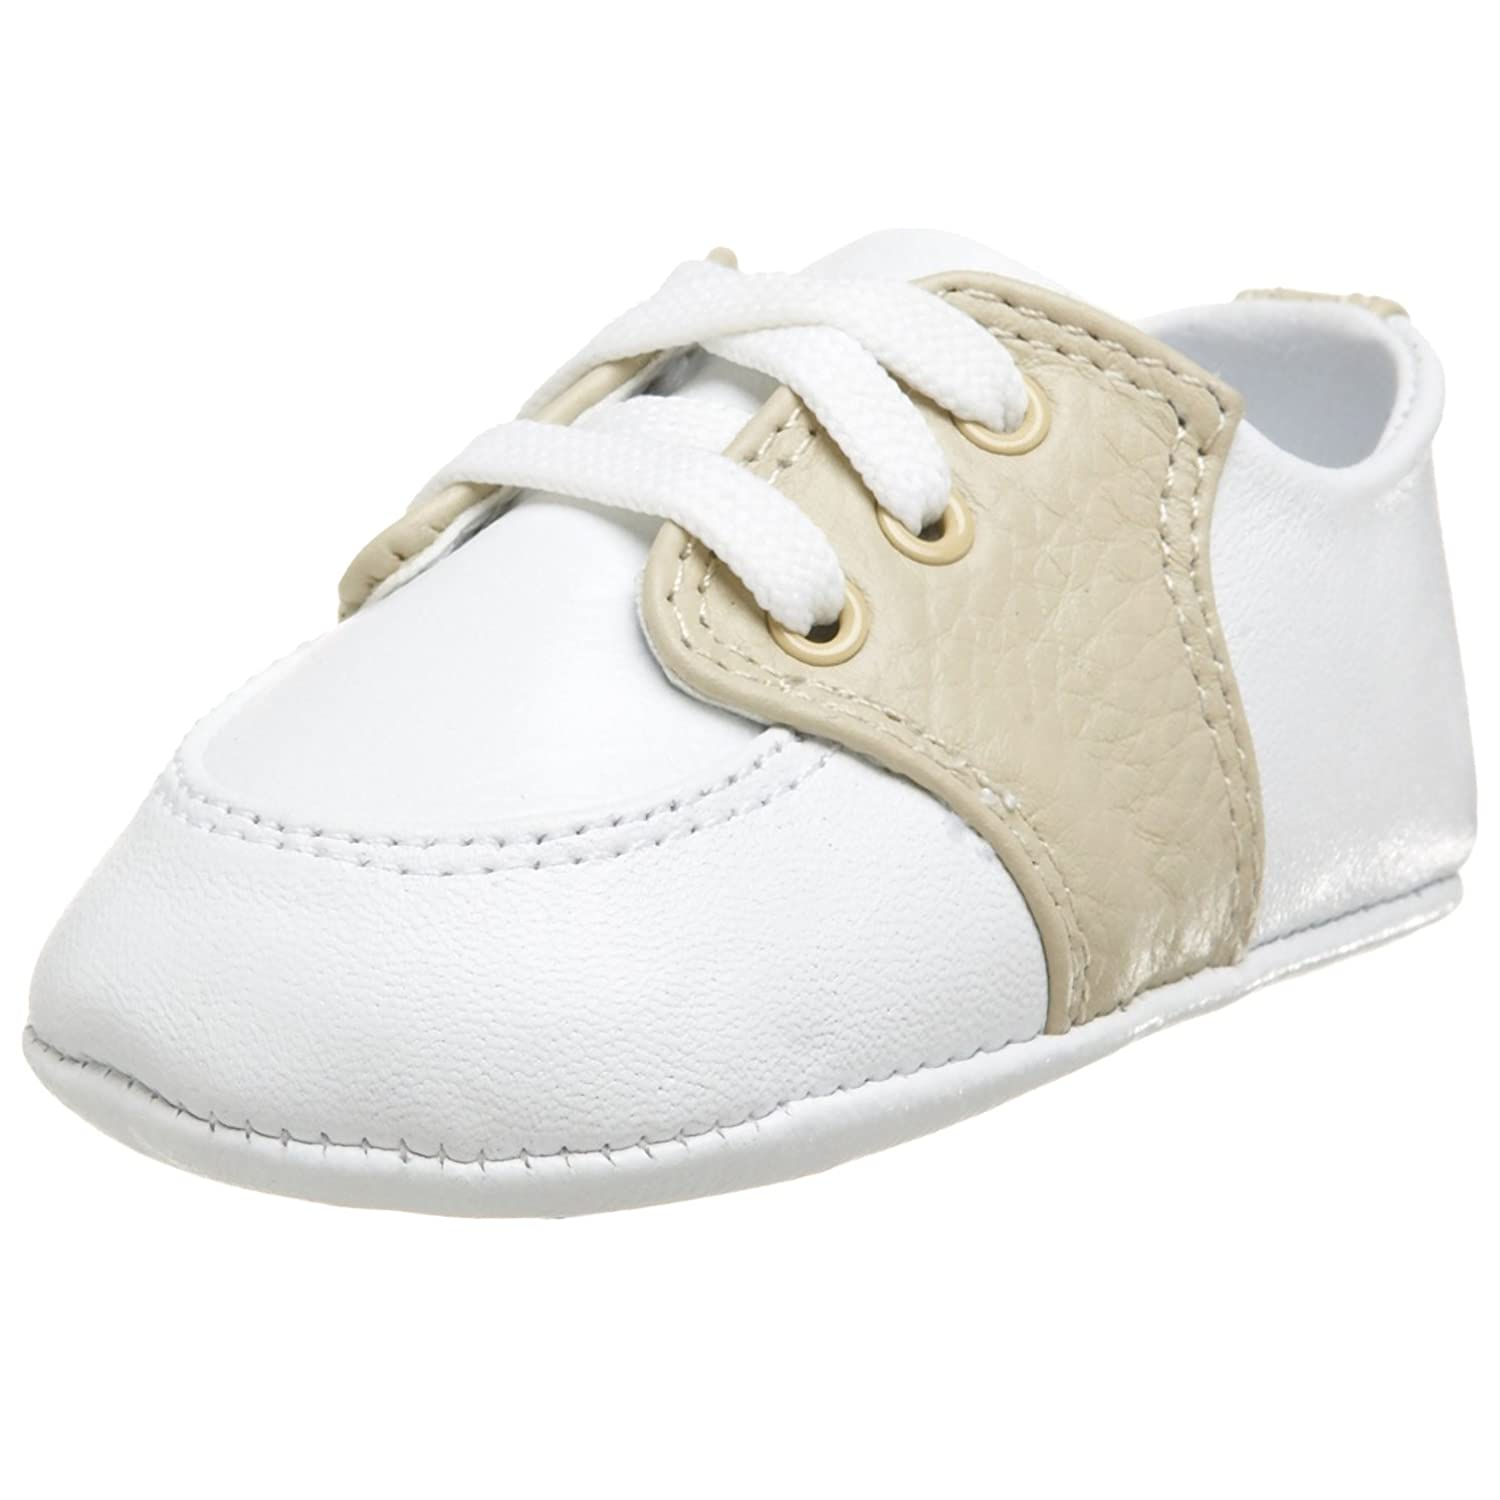 Baby Deer Conner Saddle Shoe Infant Toddler Amazon Shoes